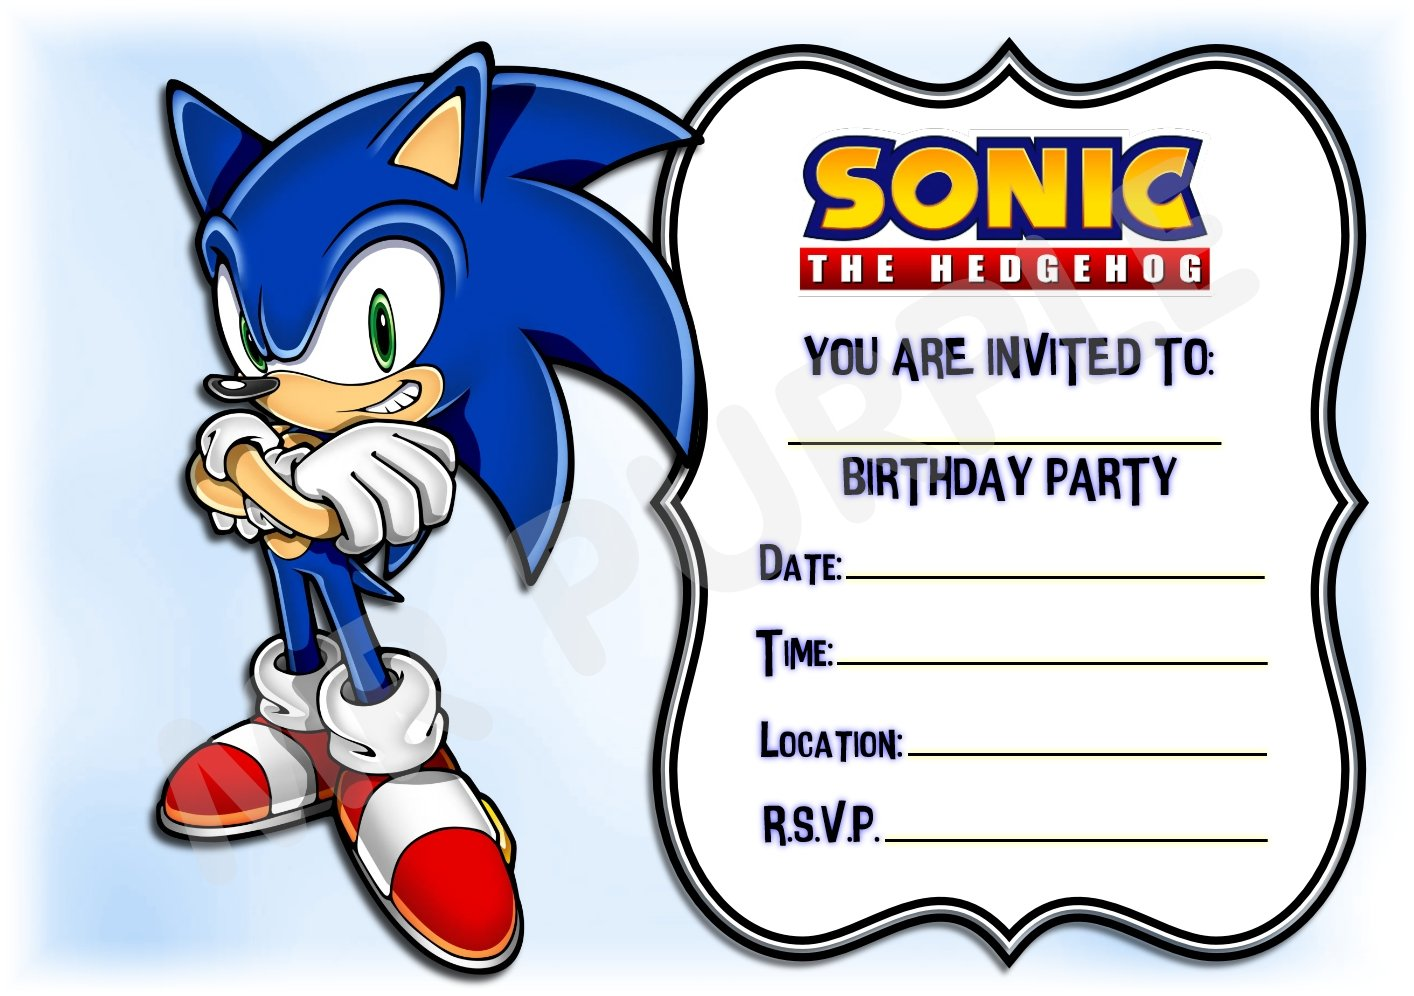 Sonic The Hedgehog Birthday Party Invite Buy Online In India At Desertcart